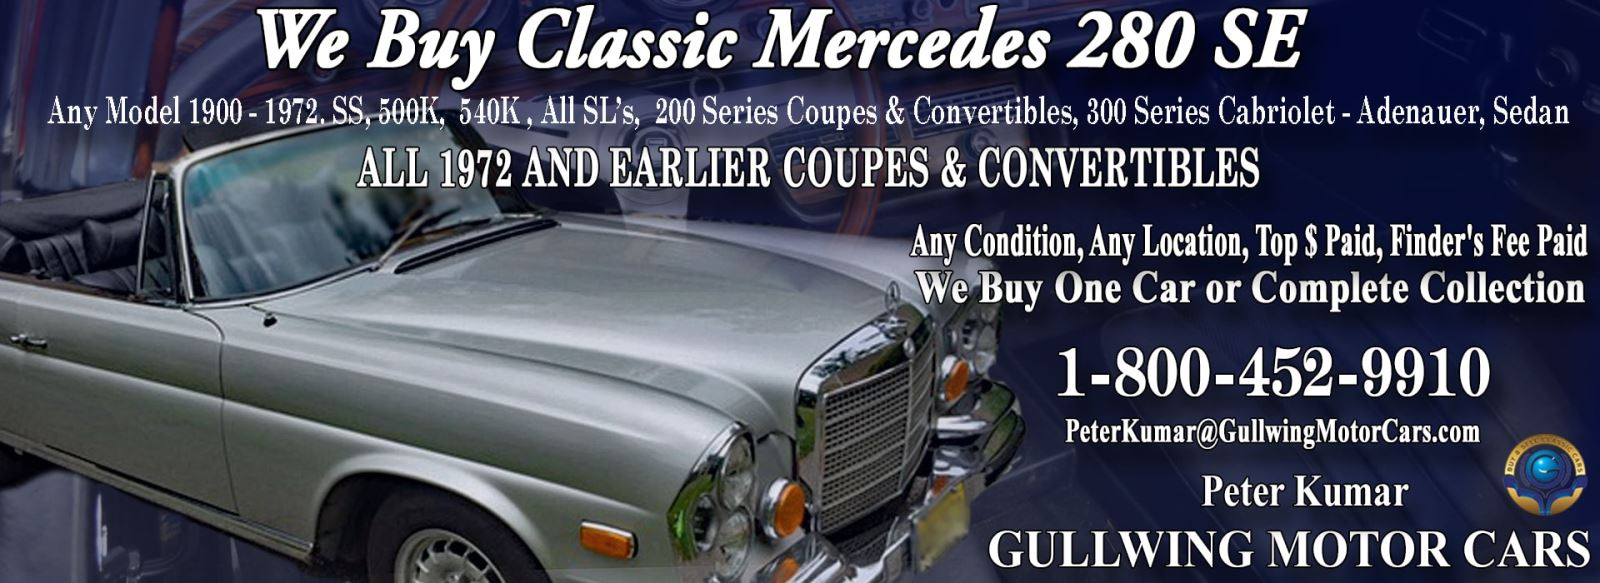 Classic Mercedes 280SE for sale, we buy vintage Mercedes 280SE. Call Peter Kumar. Gullwing Motor